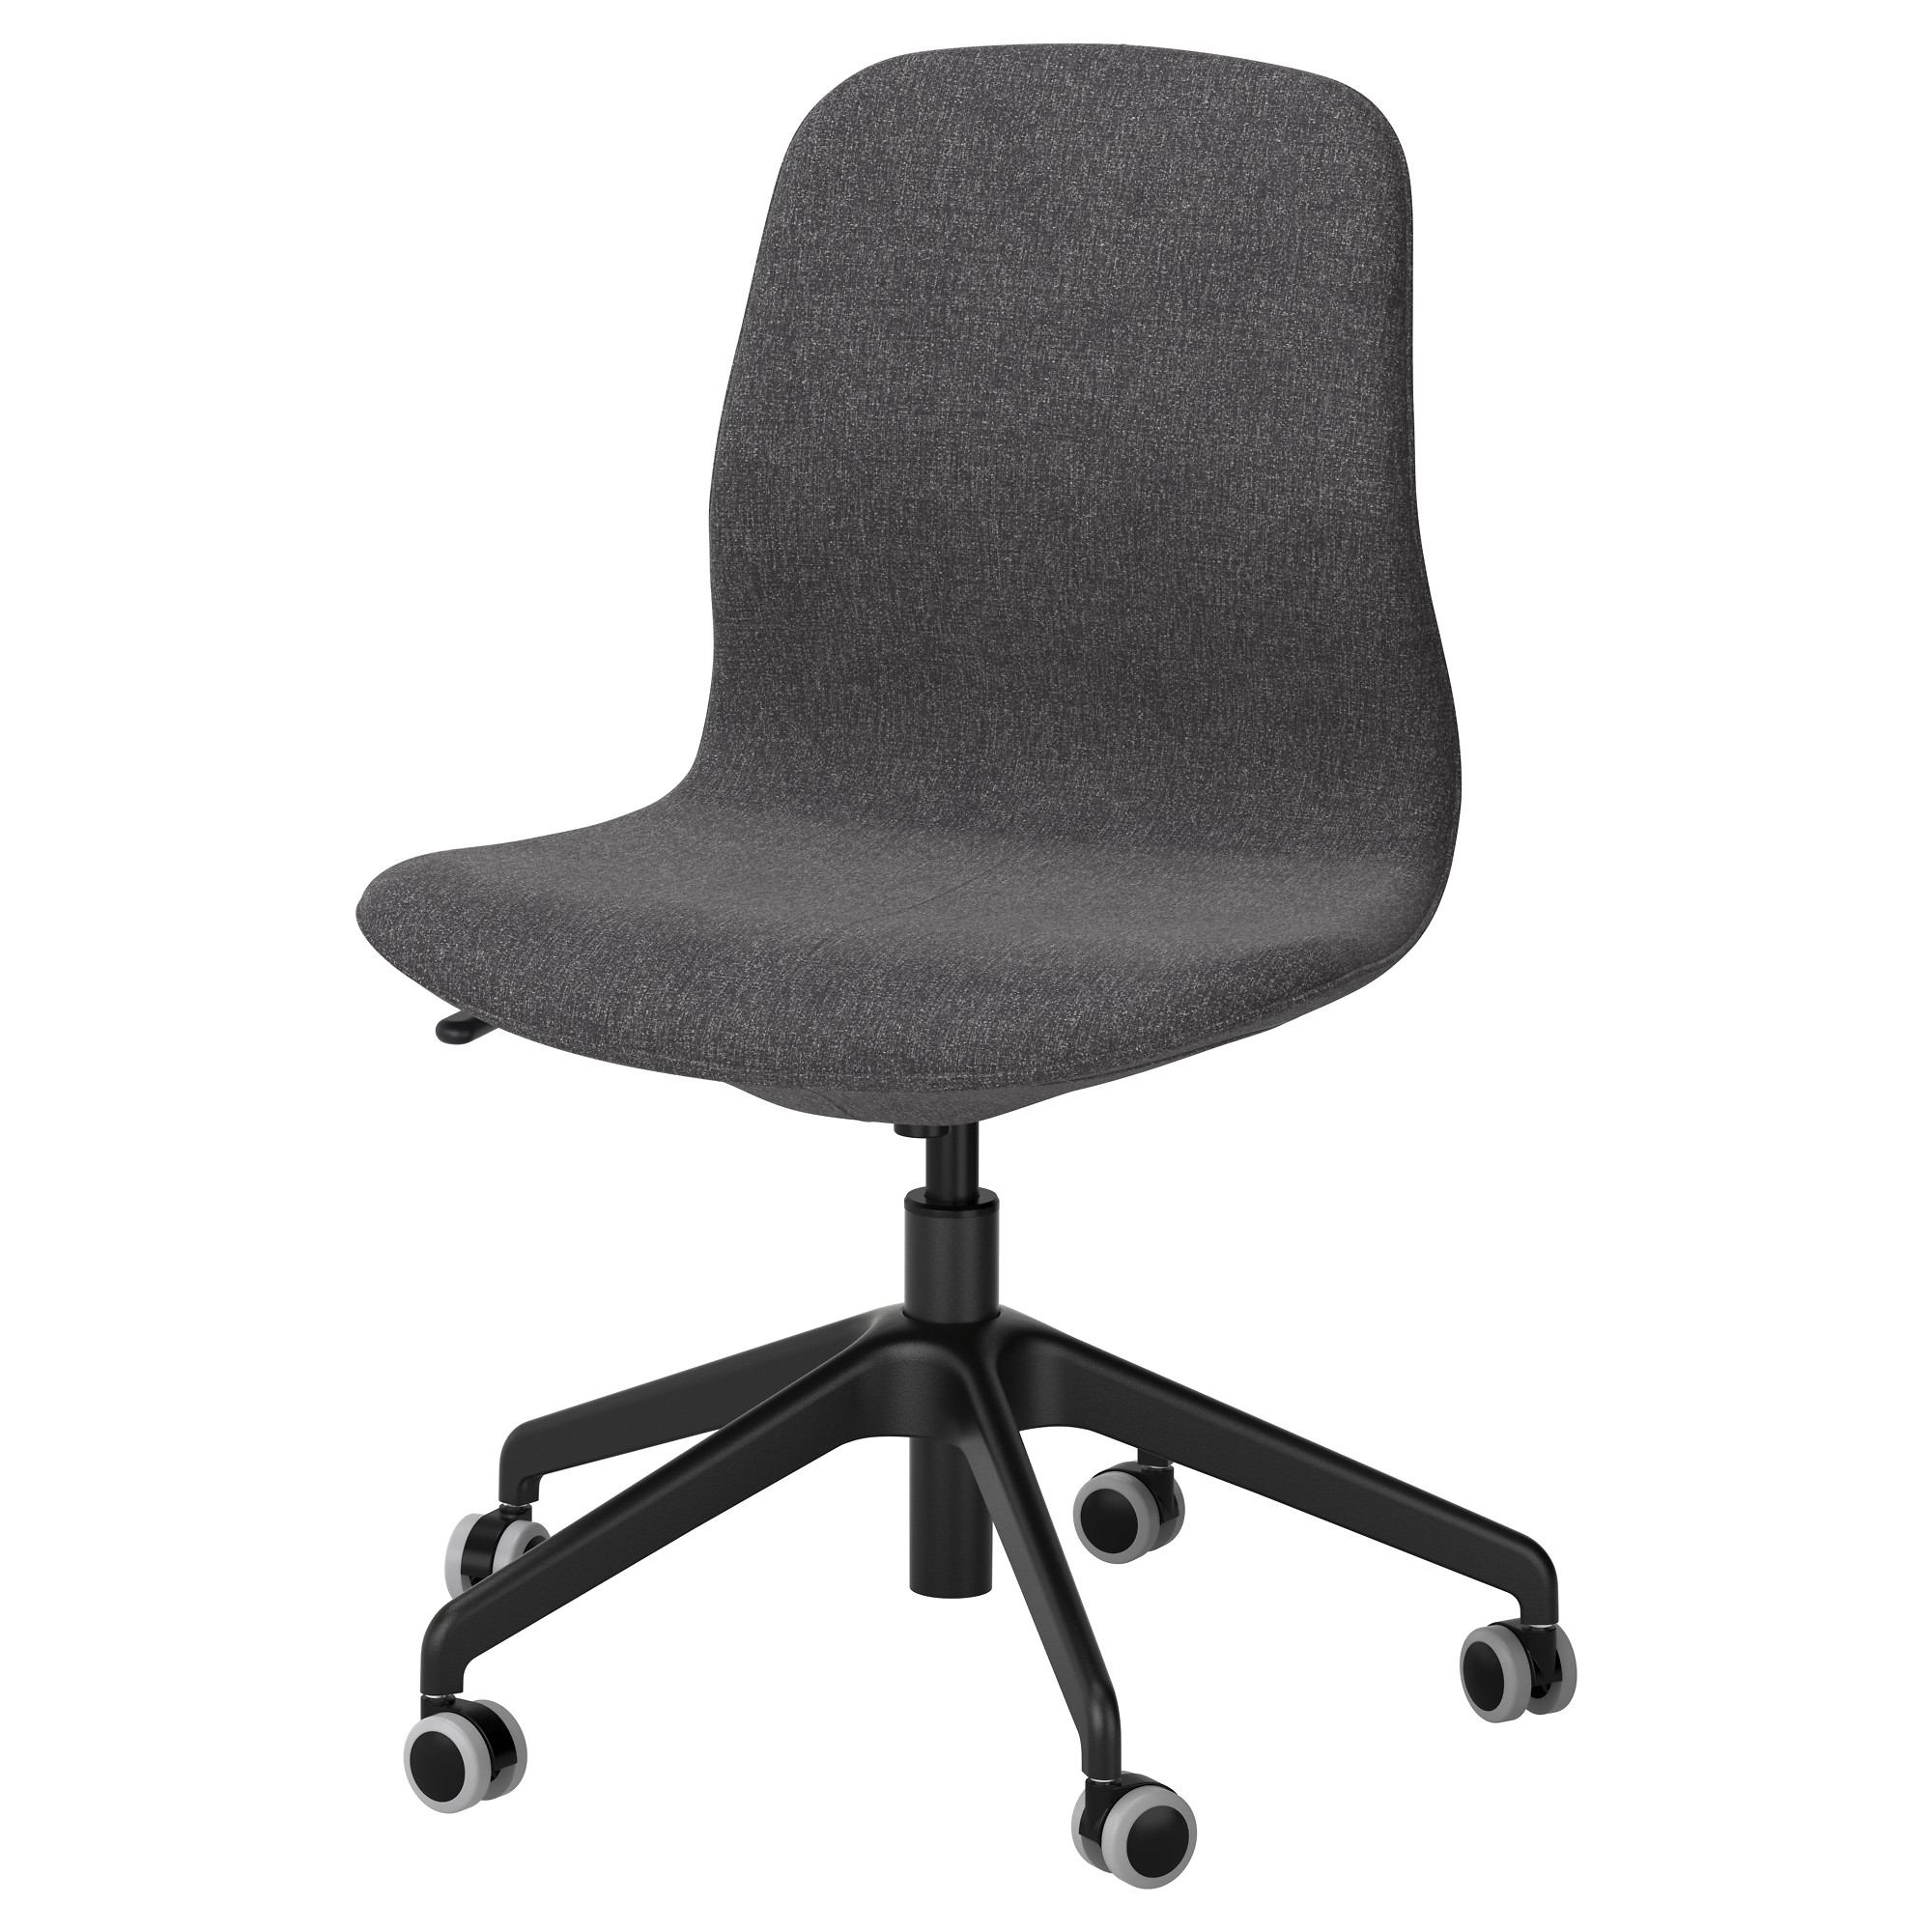 Black and white office chair - L Ngfj Ll Swivel Chair Gunnared Dark Gray Black Tested For 243 Lb Width